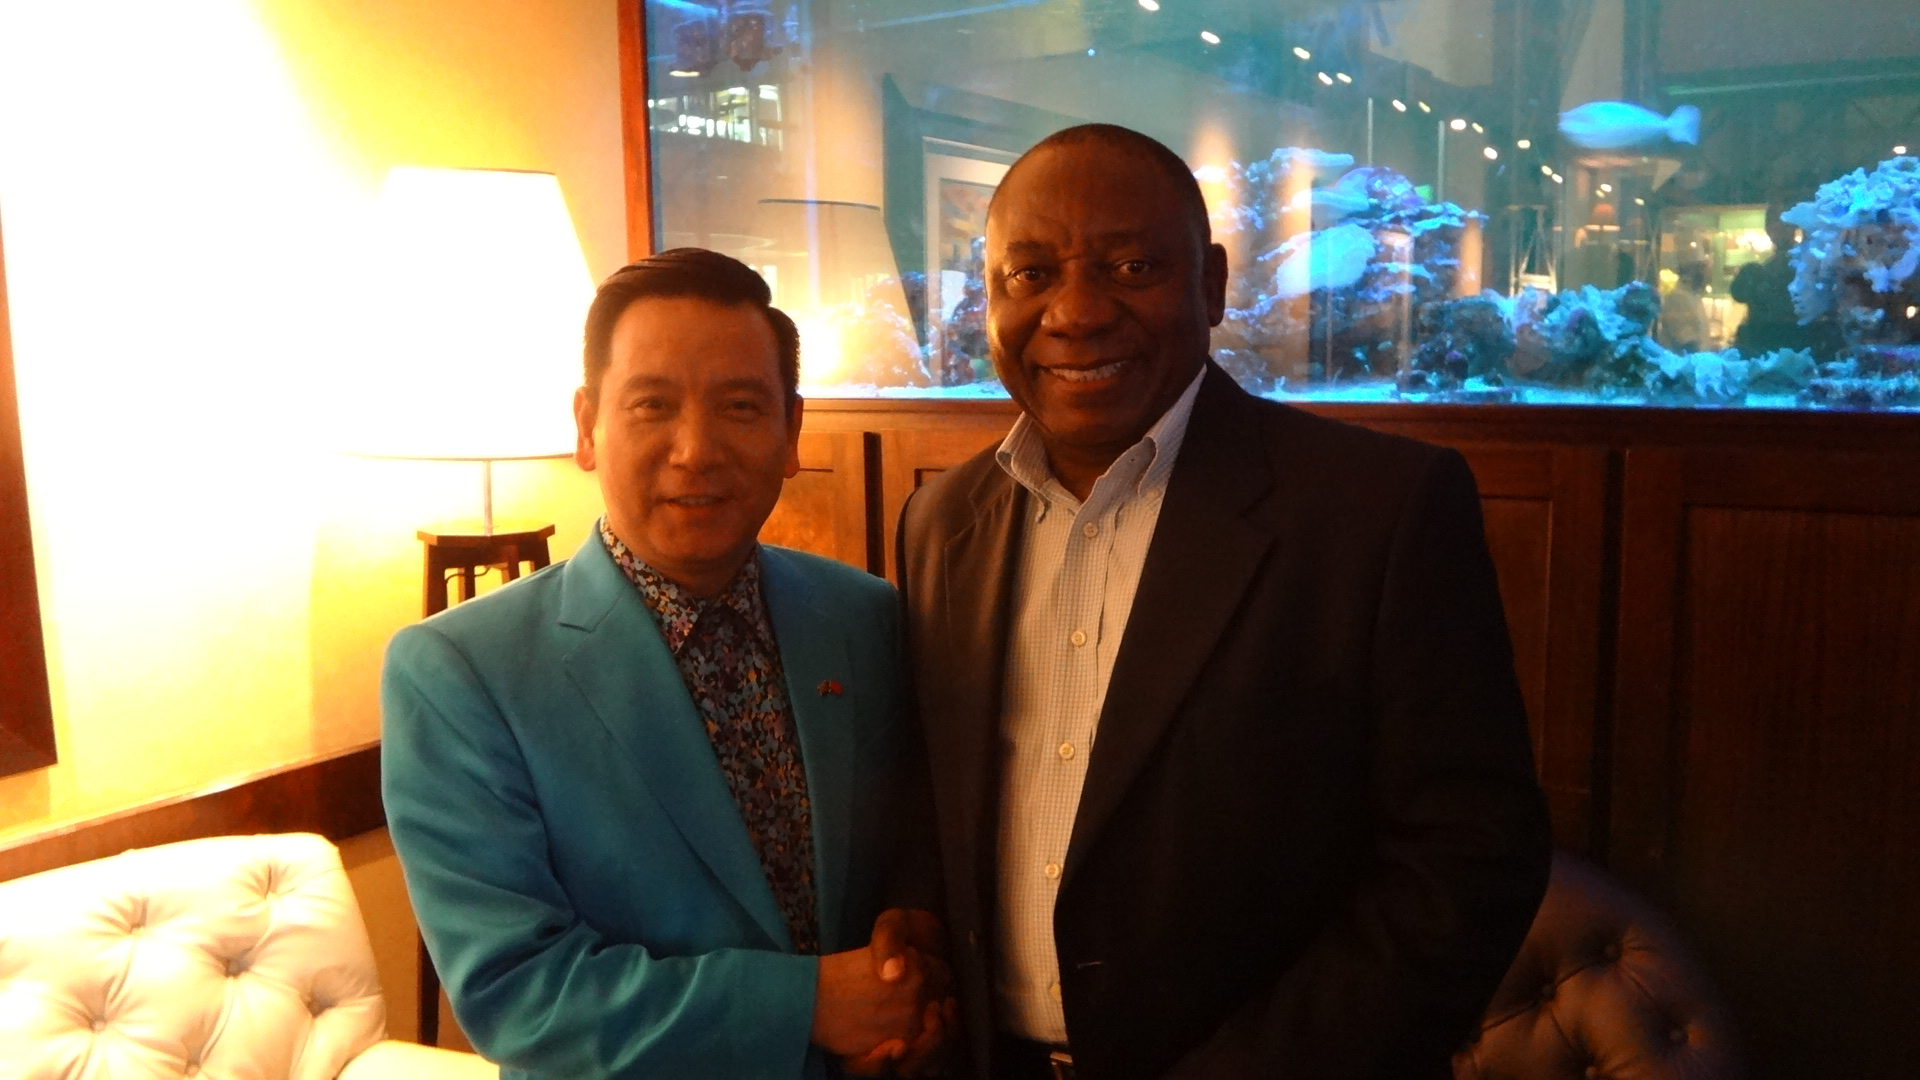 130327-Hitorical-Meeting-with-Cyril-Ramaphosa-On-ACPFA